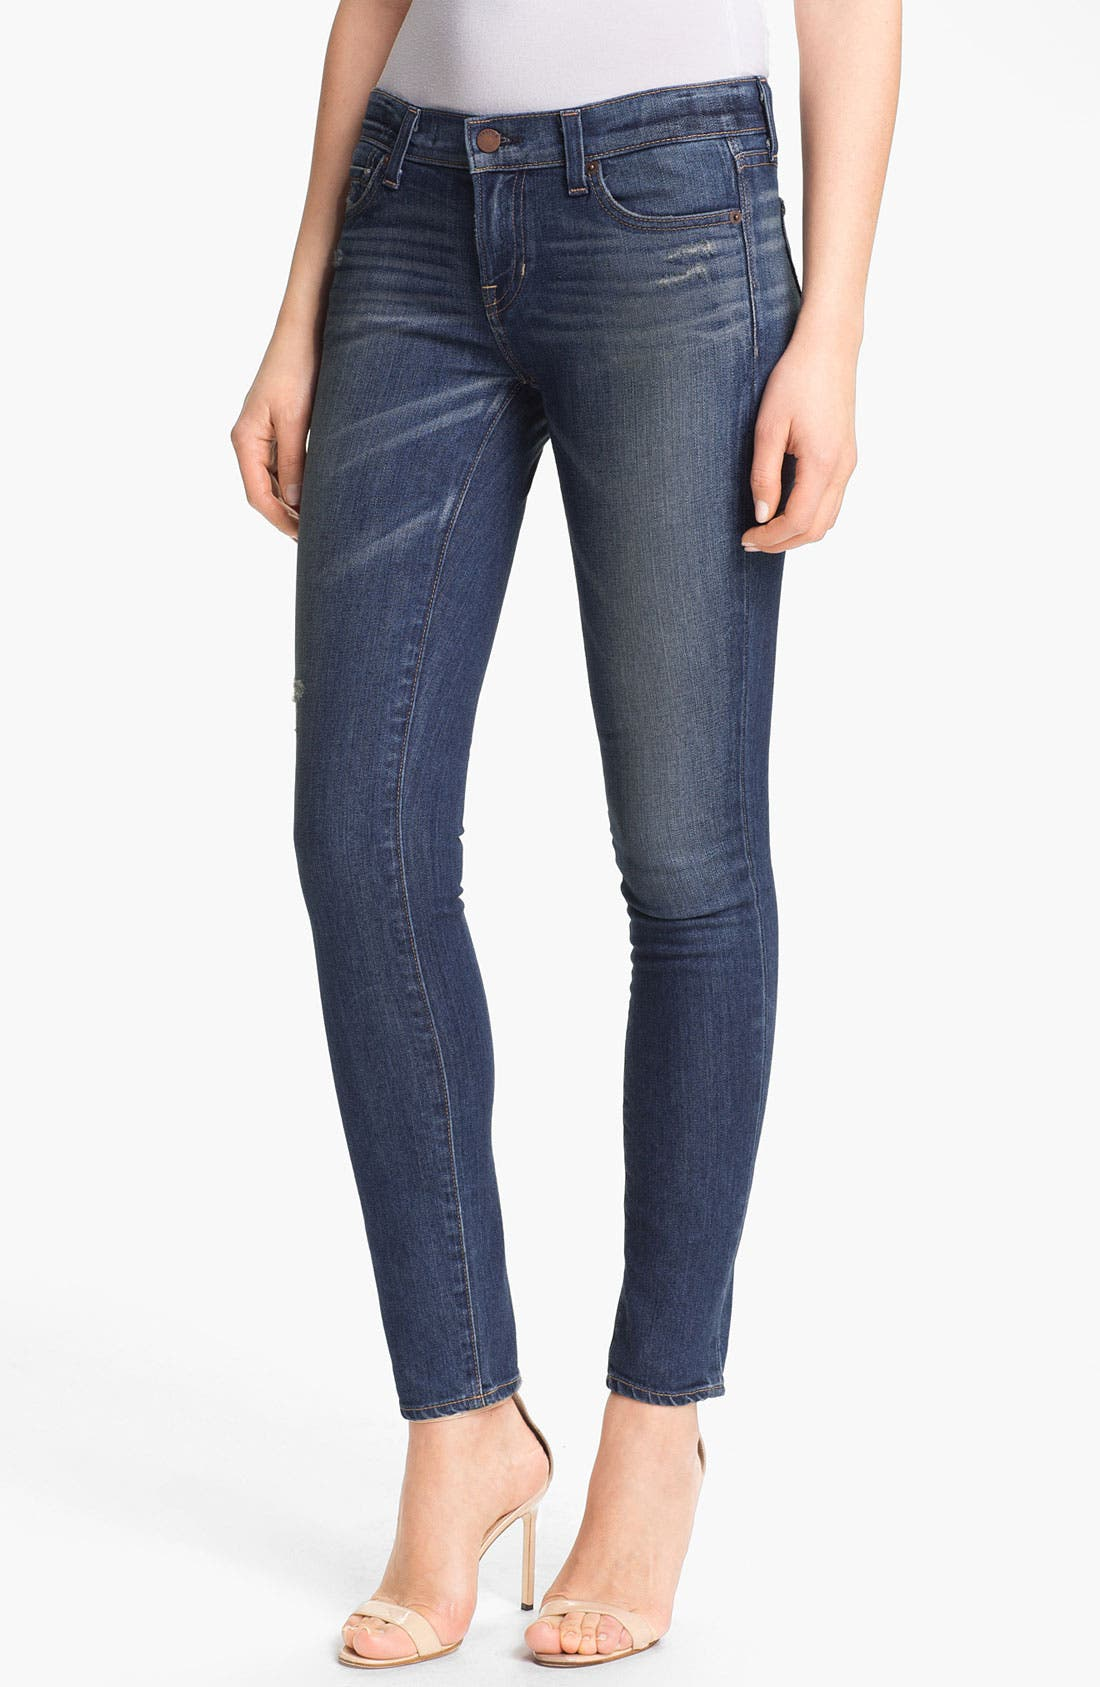 Alternate Image 1 Selected - TEXTILE Elizabeth and James 'Debbie' Skinny Jeans